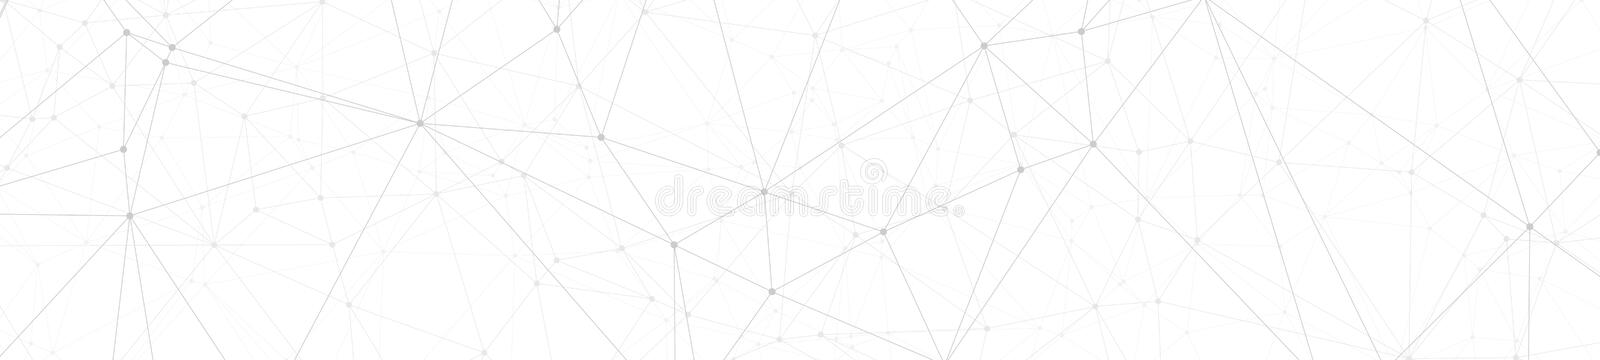 Digital wires tech communication, abstract polygonal concept, vector lines and circle dots connected, wide banner or header. Technology science background royalty free illustration